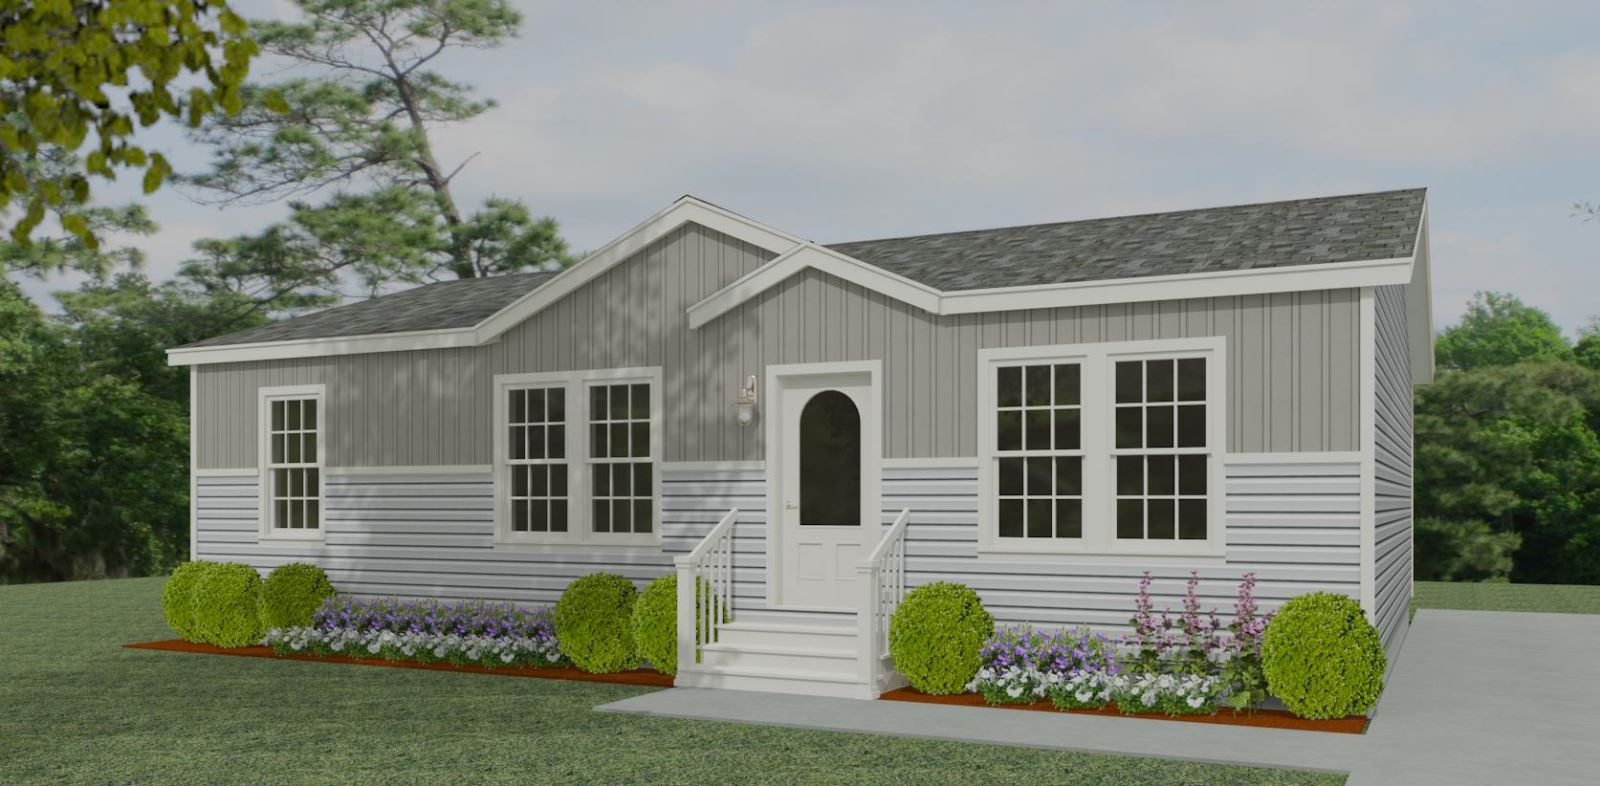 Exterior rendering Jacobsen Homes floor plan TNR-44811A